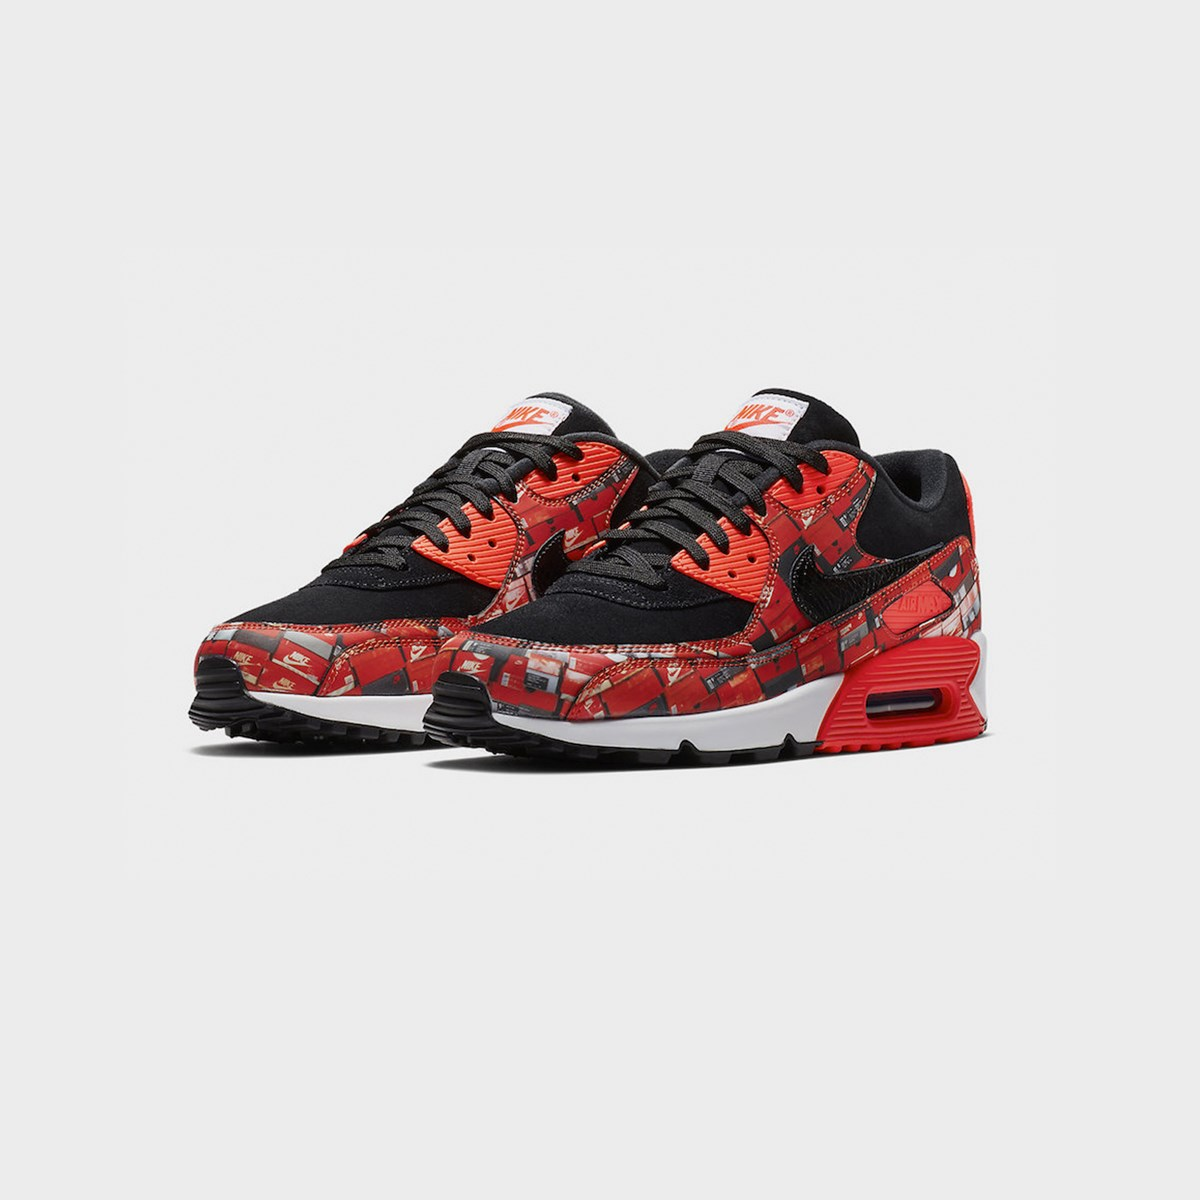 newest 40229 a3fb1 nike air max 90 print aq0926 001 sneakers   streetwear på nätet sen 1999